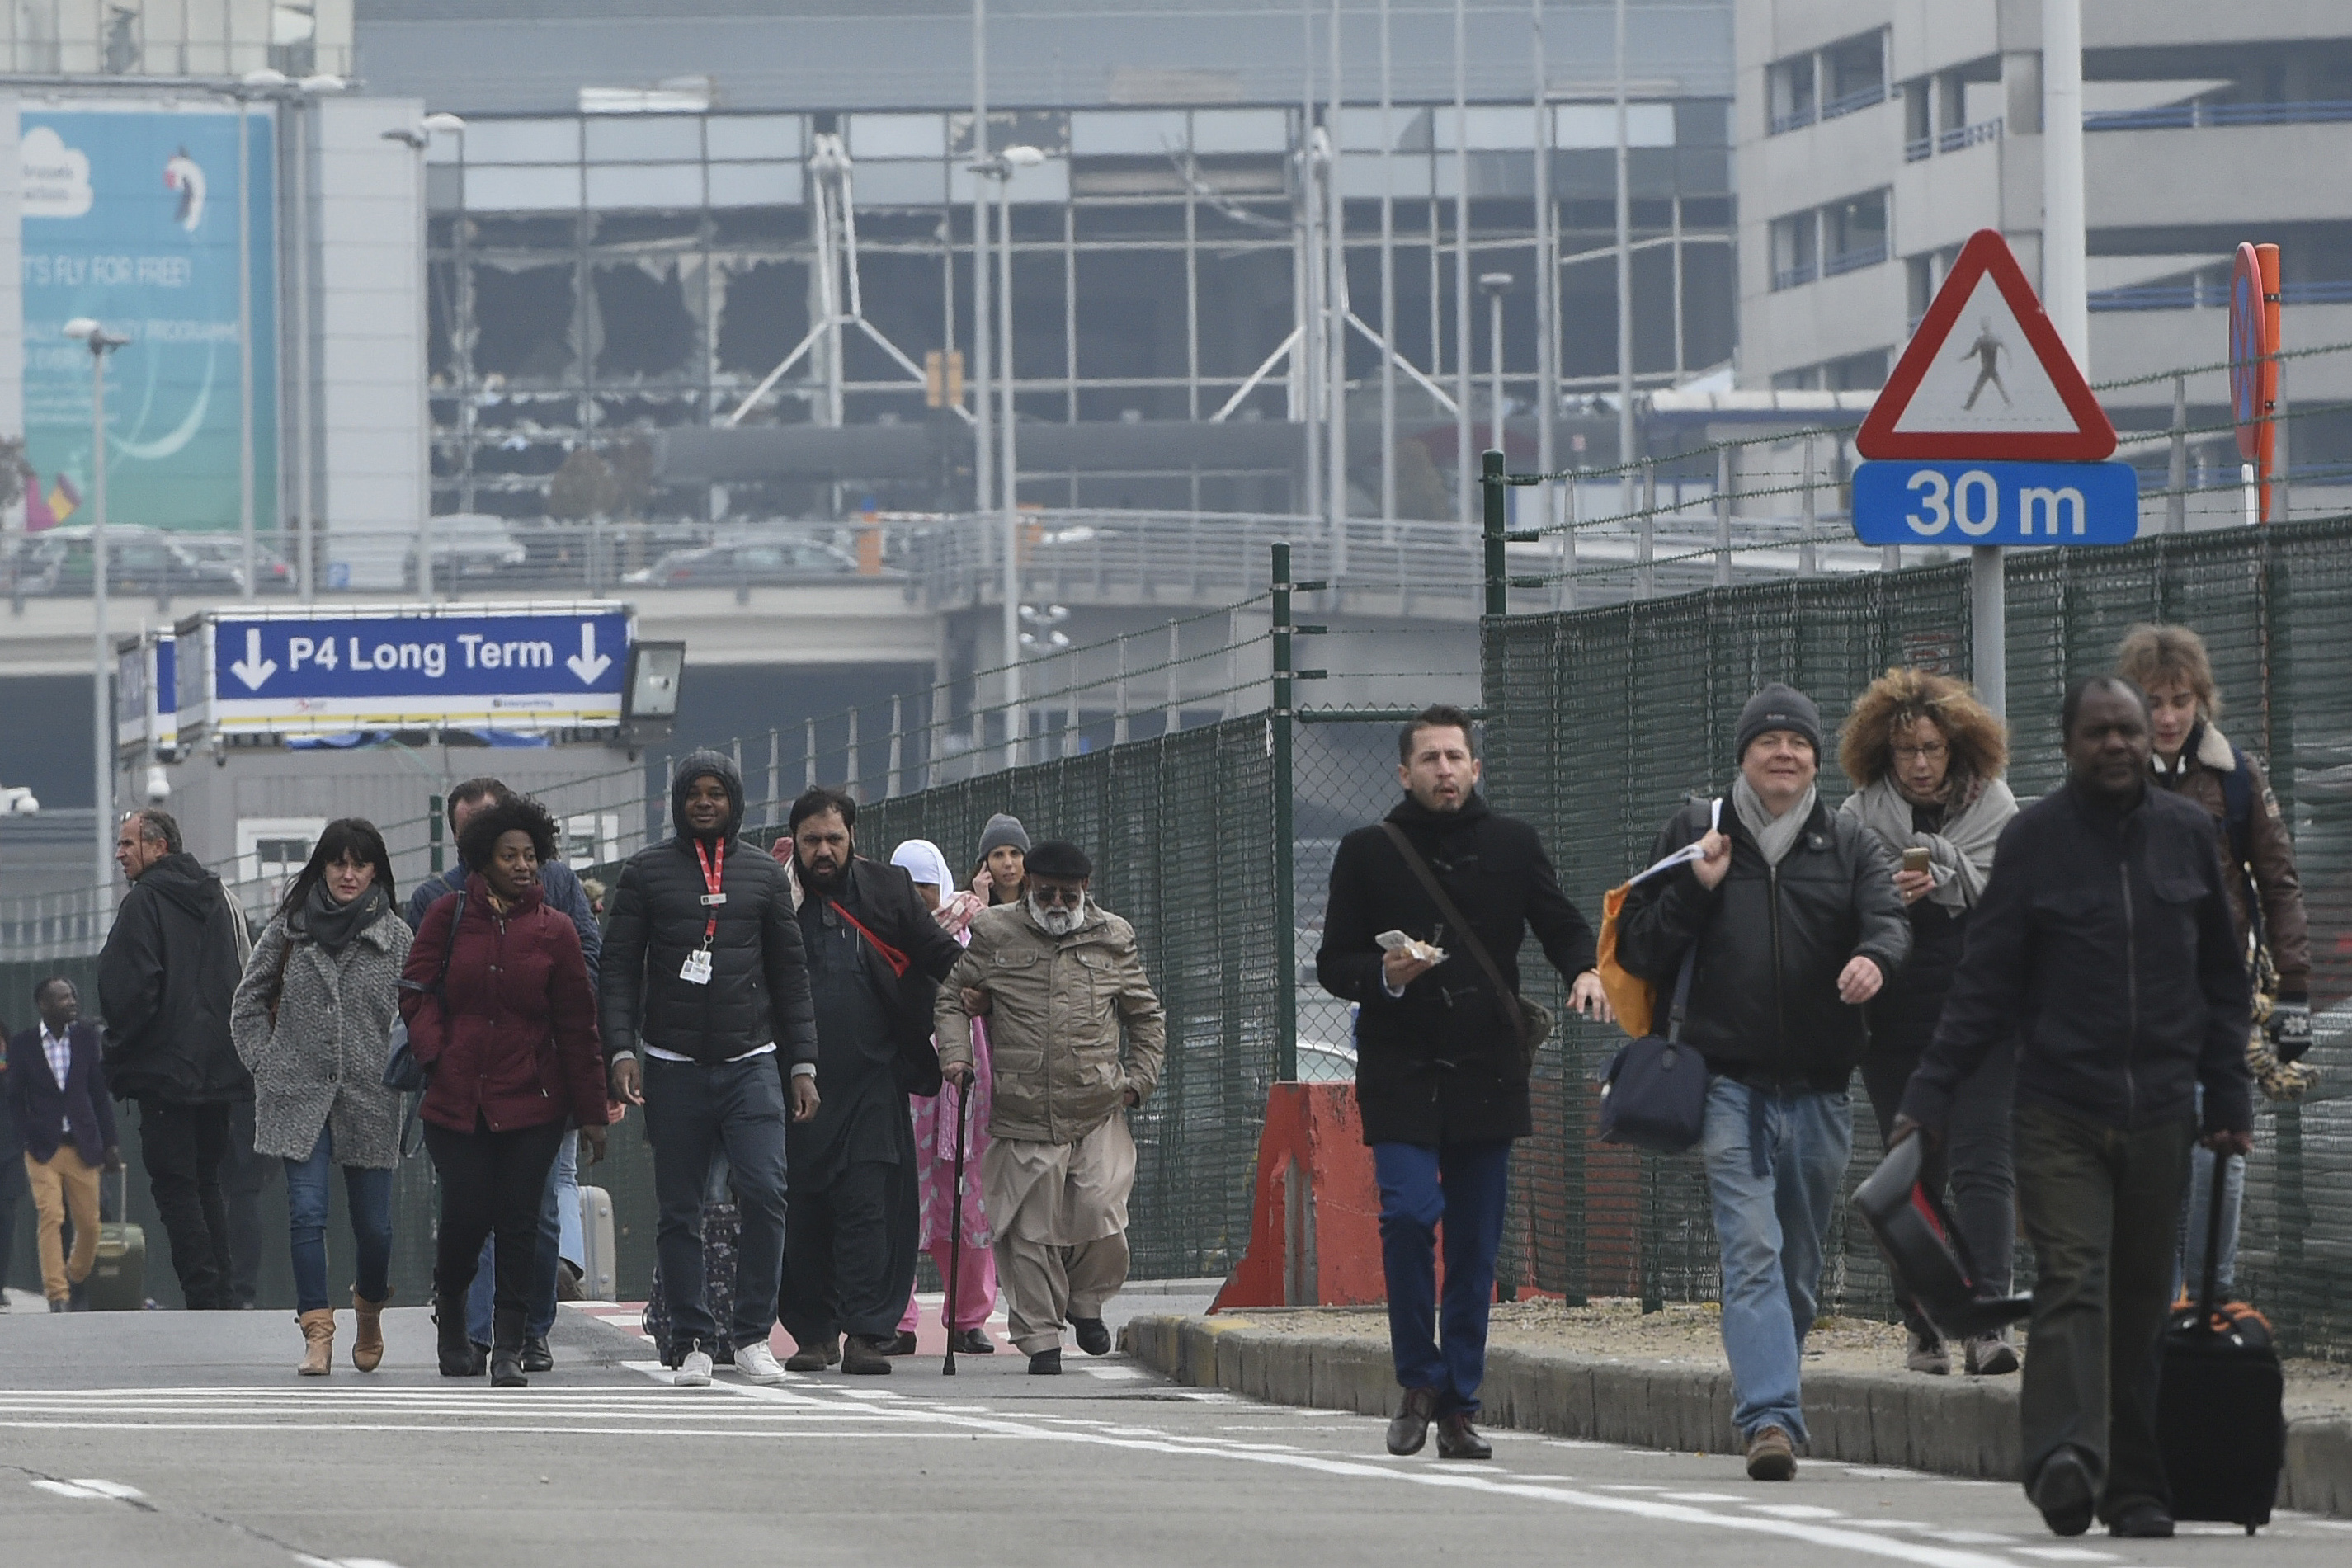 Passengers leave Brussels airport, on March 22, 2016 in Zaventem , following its evacuation after at least 13 people were killed and 35 injured as twin blasts rocked the main terminal of Brussels airport.AFP PHOTO / JOHN THYS / AFP / JOHN THYS